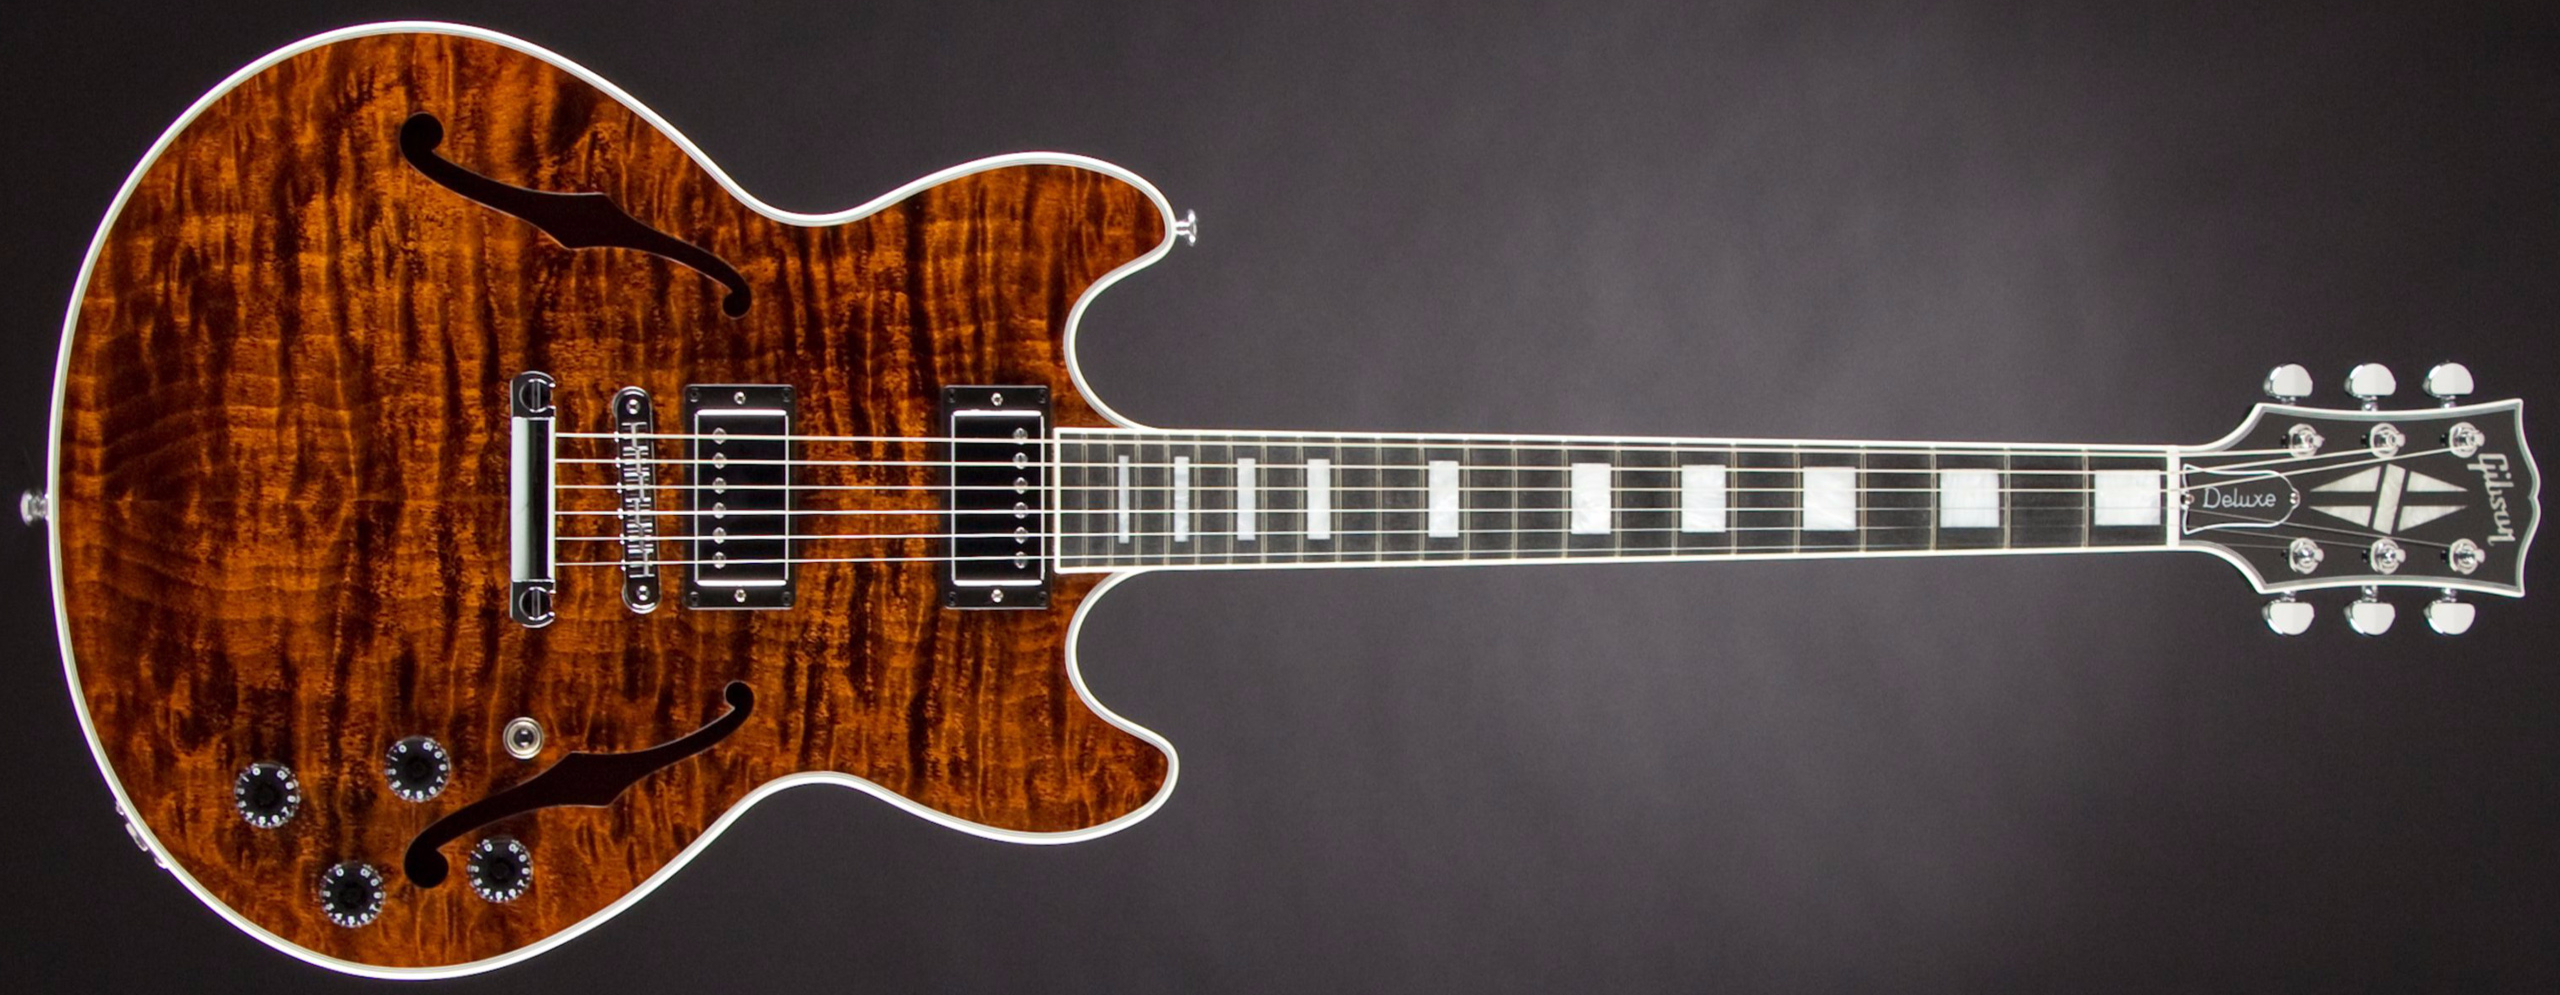 GIBSON Midtown Deluxe Root Beer Limited Edition